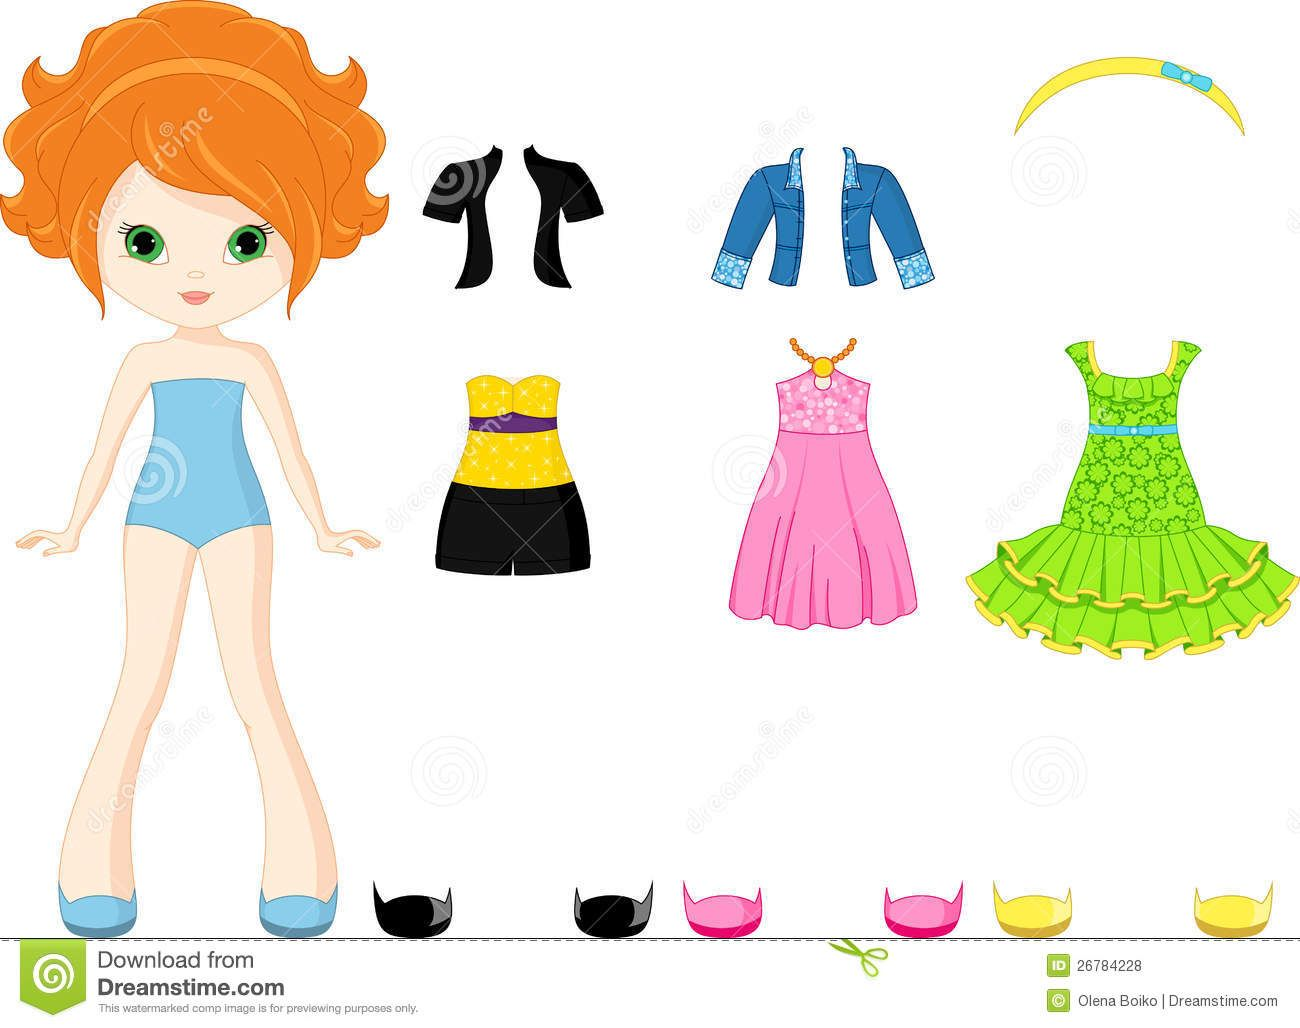 Paper Doll And Every Day Clothes Olena Boiko